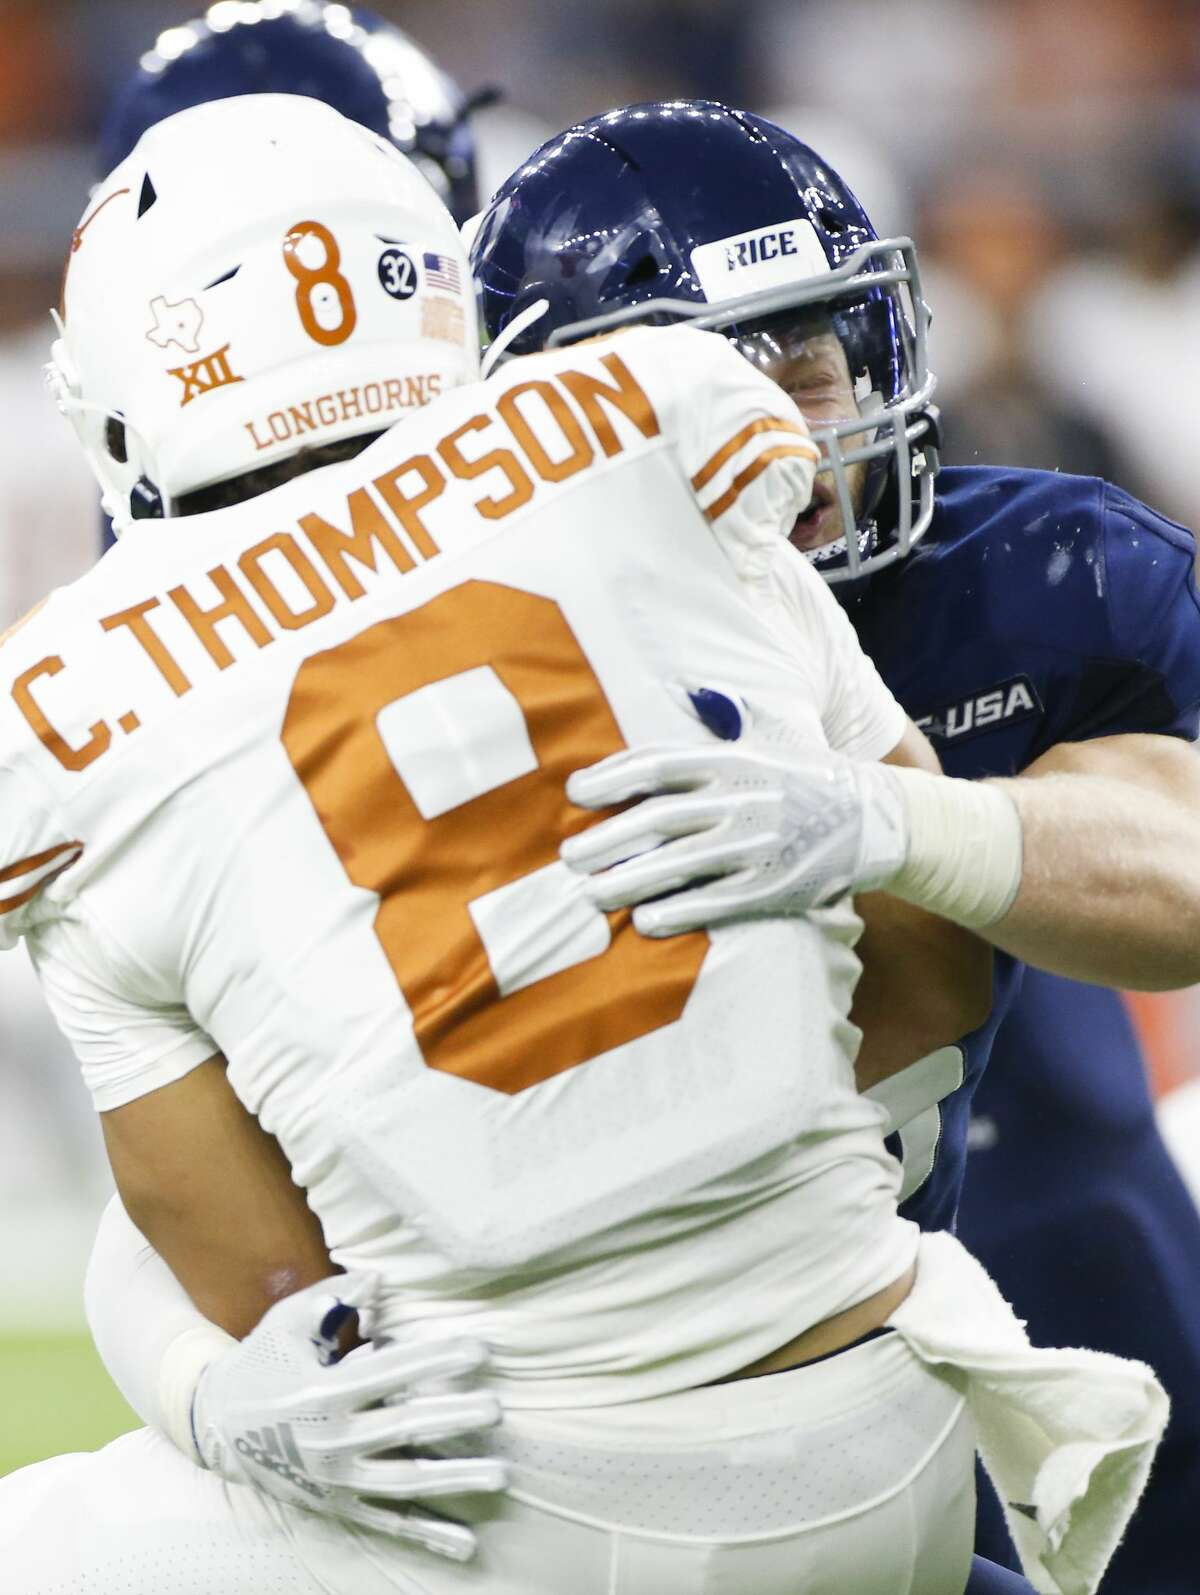 Texas Longhorns quarterback Casey Thompson (8) is sacked by Rice Owls linebacker Blaze Alldredge (55) at NRG Stadium in Houston on Saturday, Sept. 14, 2019. Texas Longhorns won the game 48-13.